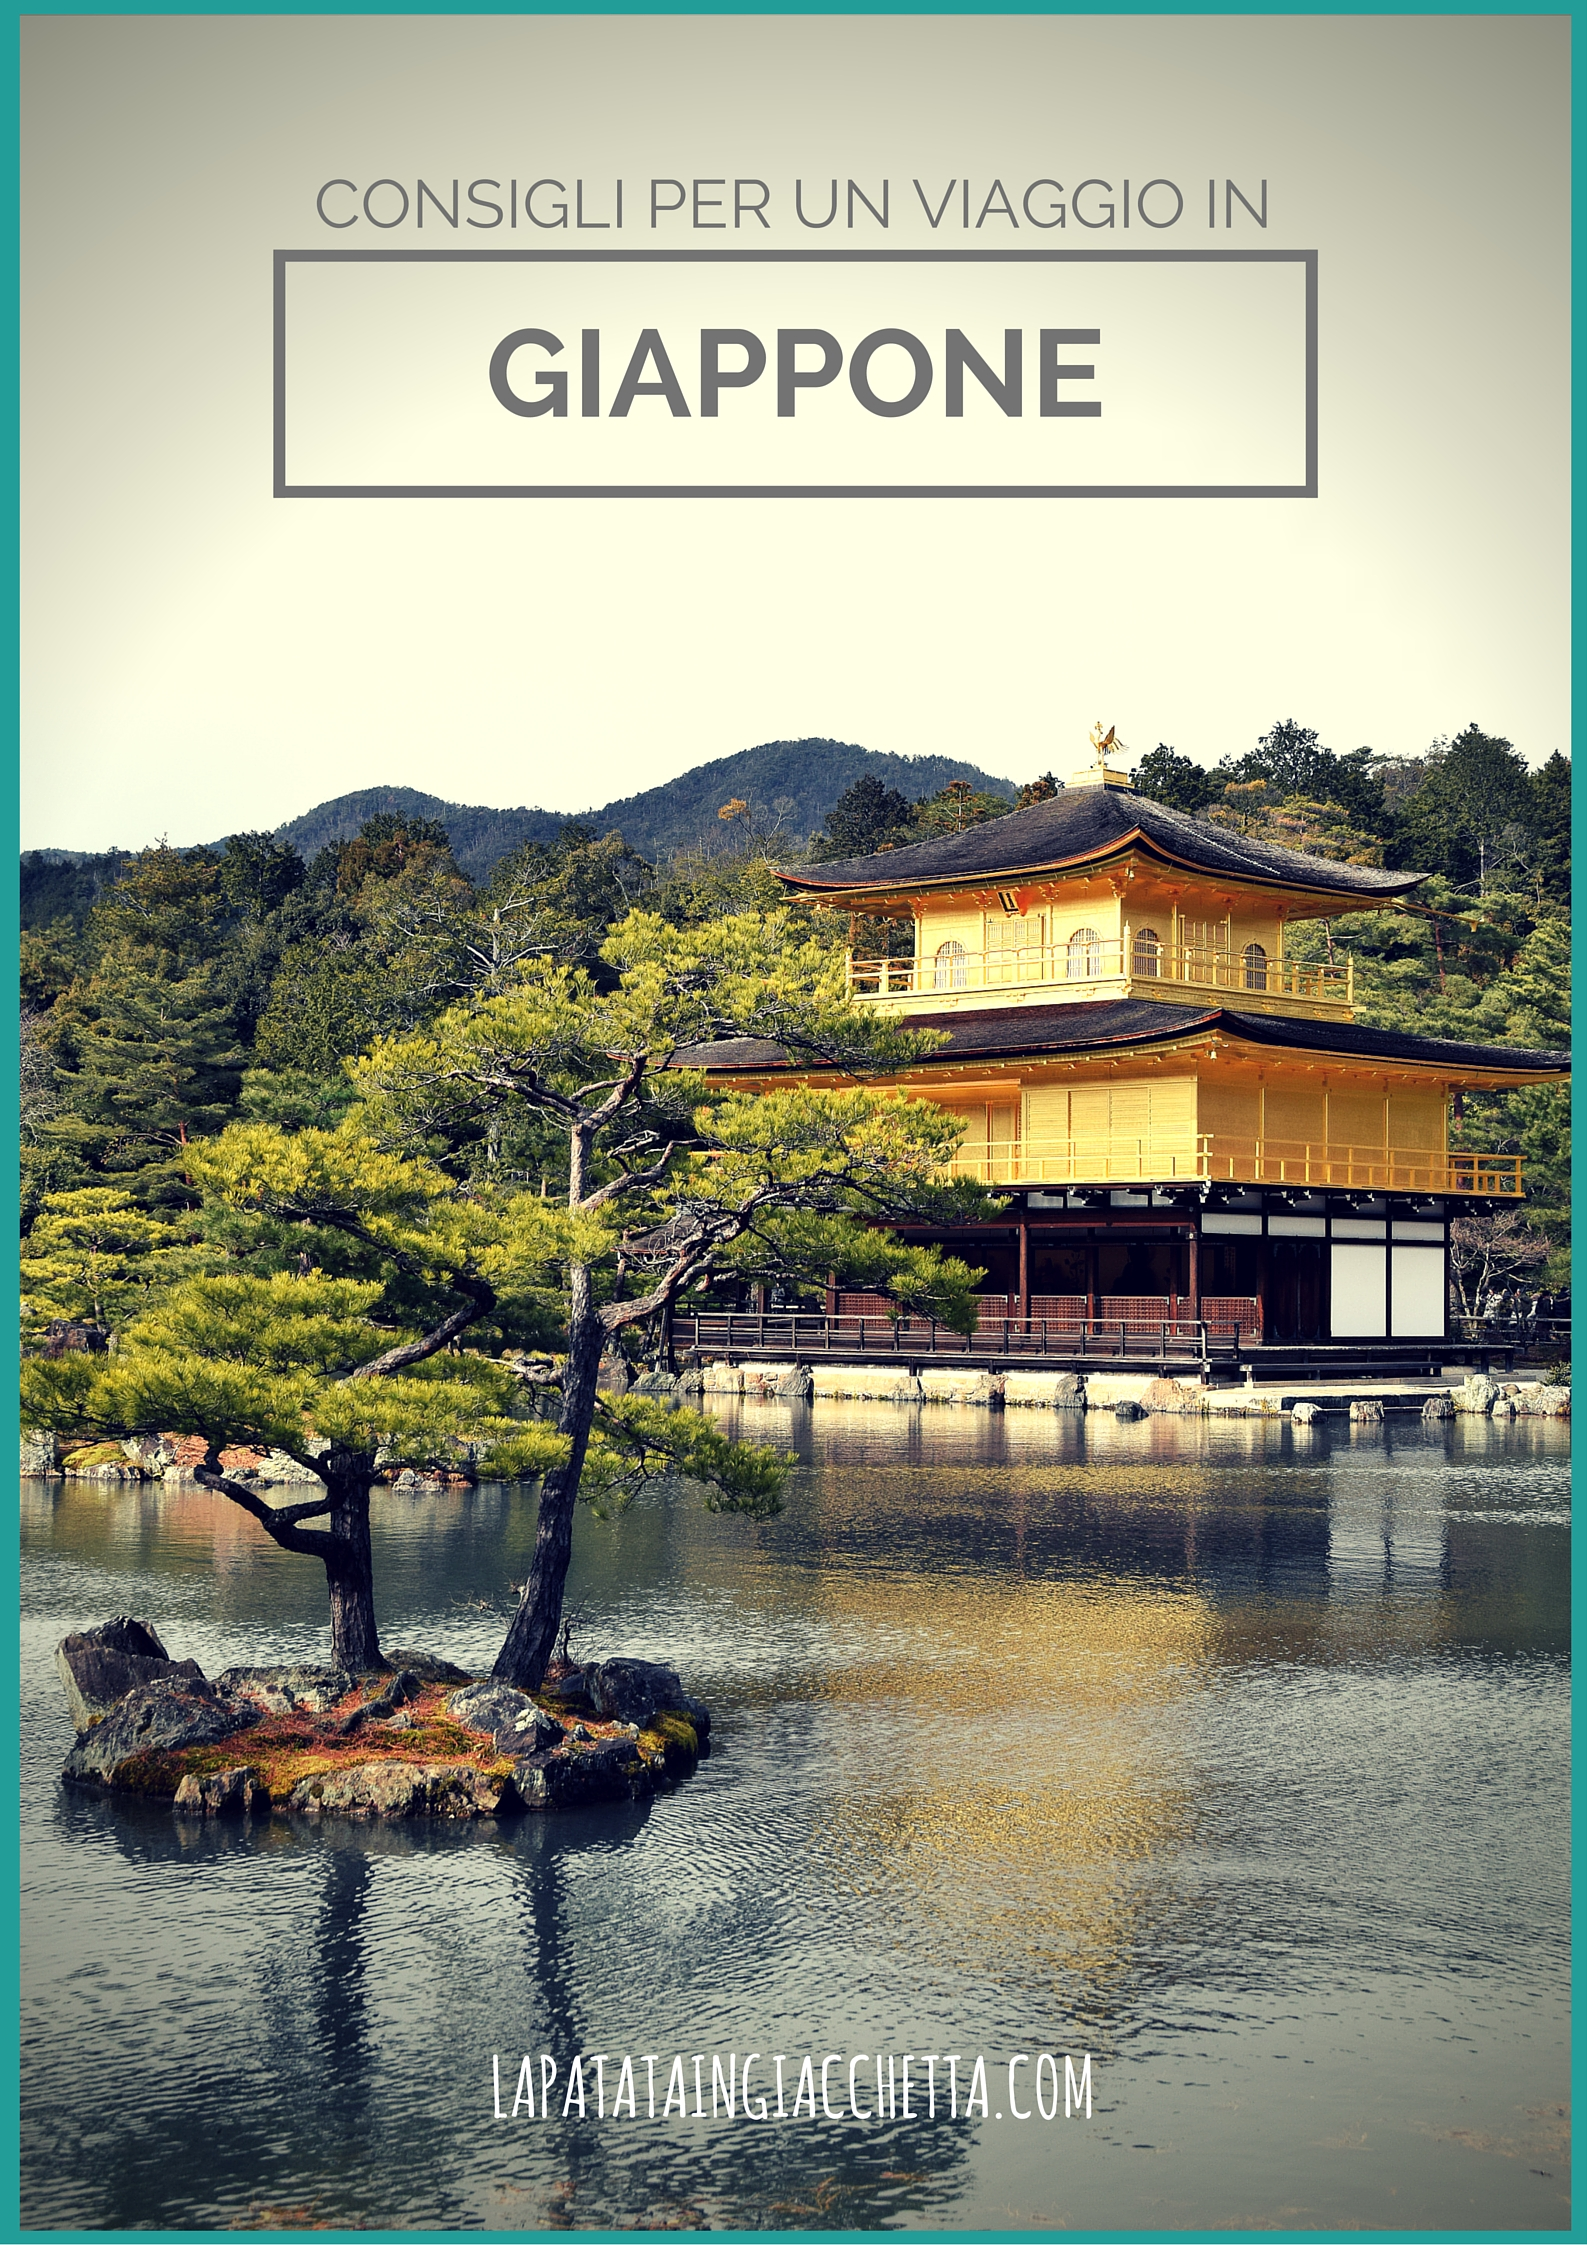 Communication on this topic: Giappone: 7 cose da sapere prima di , giappone-7-cose-da-sapere-prima-di/